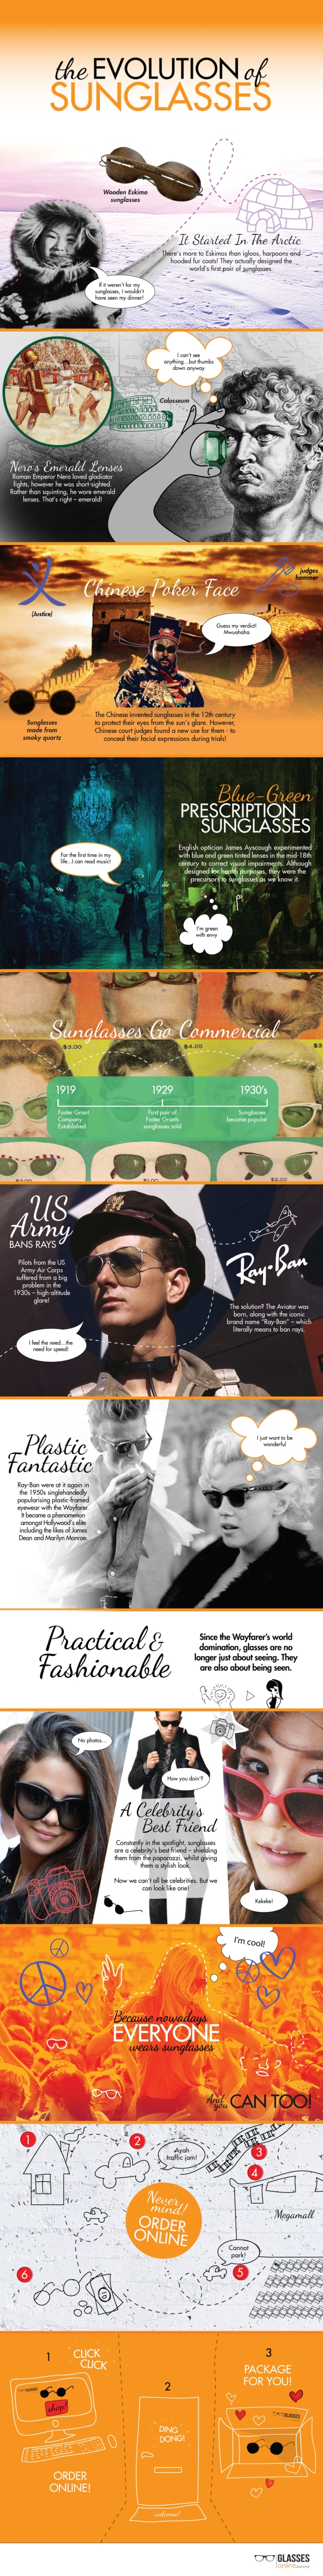 The Evolution Of Sunglasses